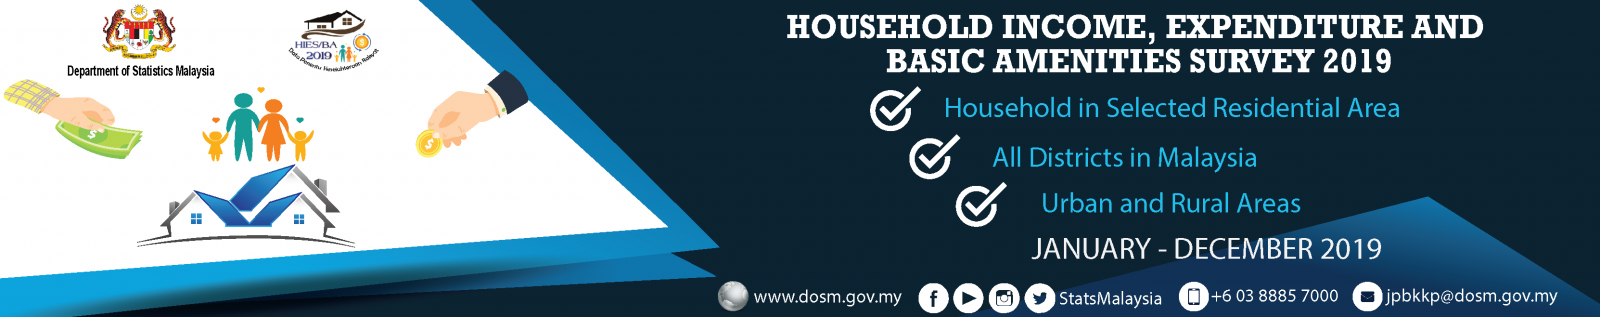 Department of Statistics Malaysia Official Portal